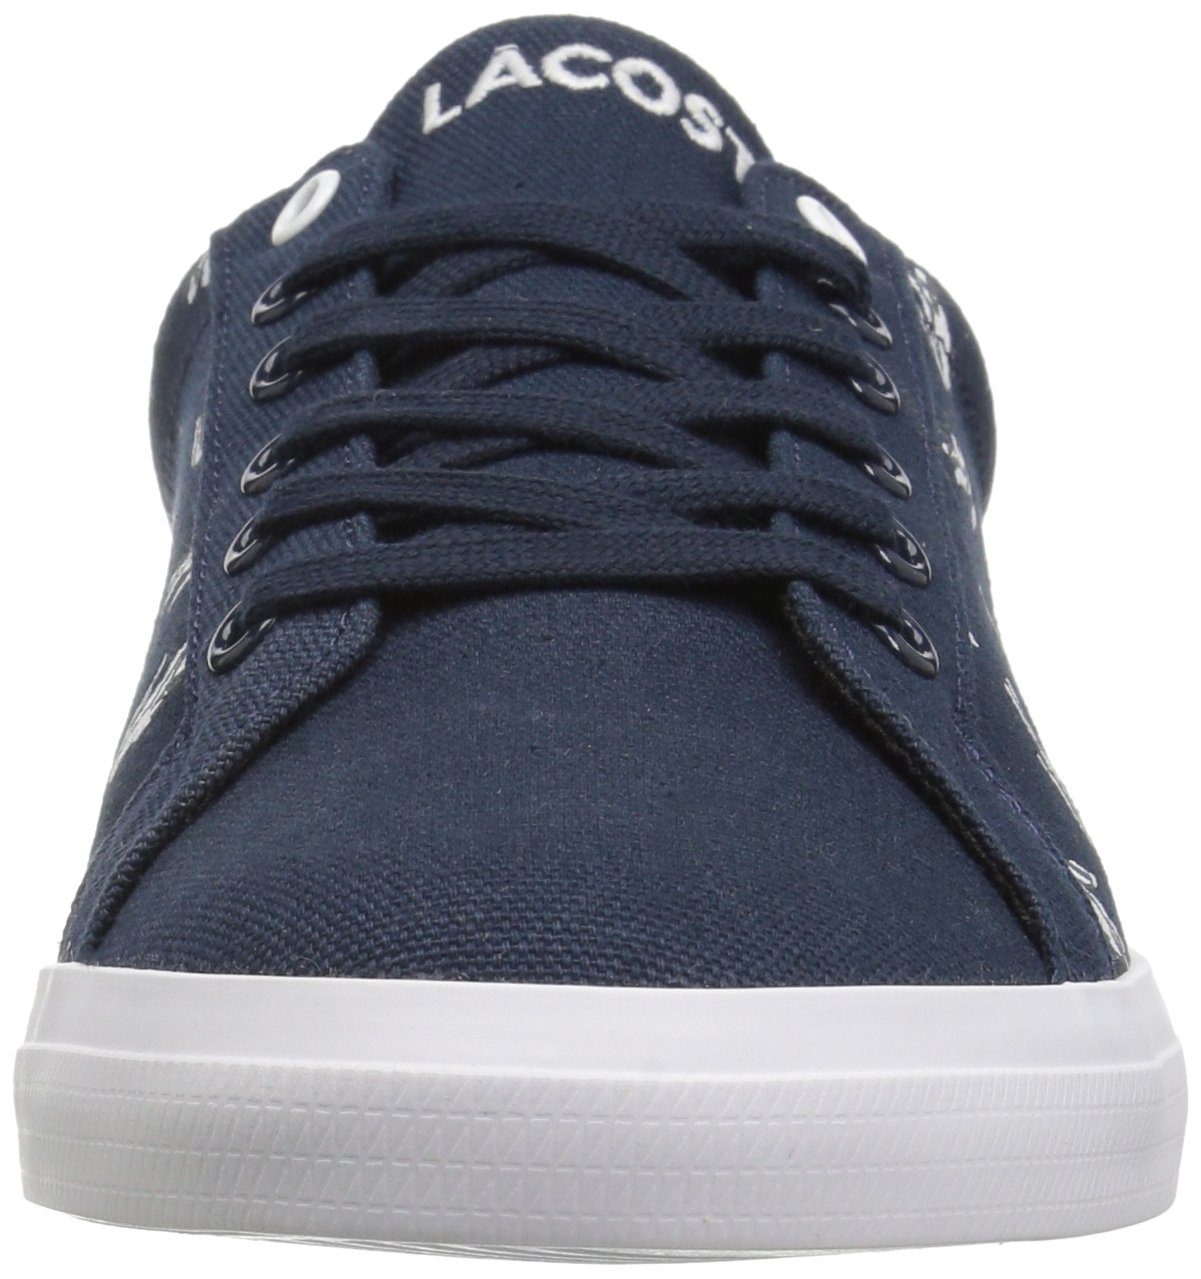 Lacoste Kids' Lerond Sneakers,Navy/White cotton canvas,5 M US Big Kid by Lacoste (Image #4)